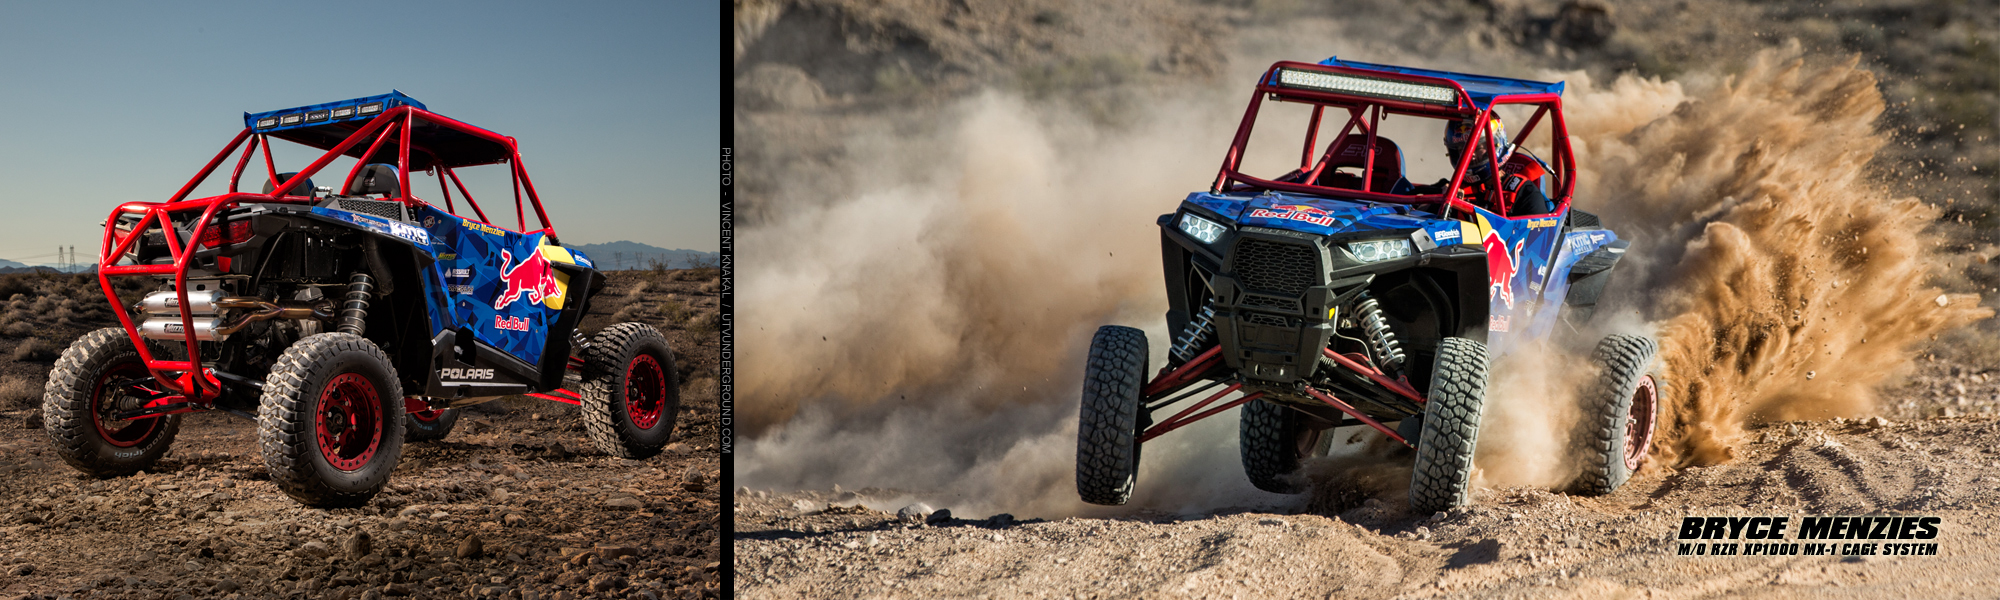 Magnum Offroad Polaris RZR XP 1000 MX-1 Roll Cage System